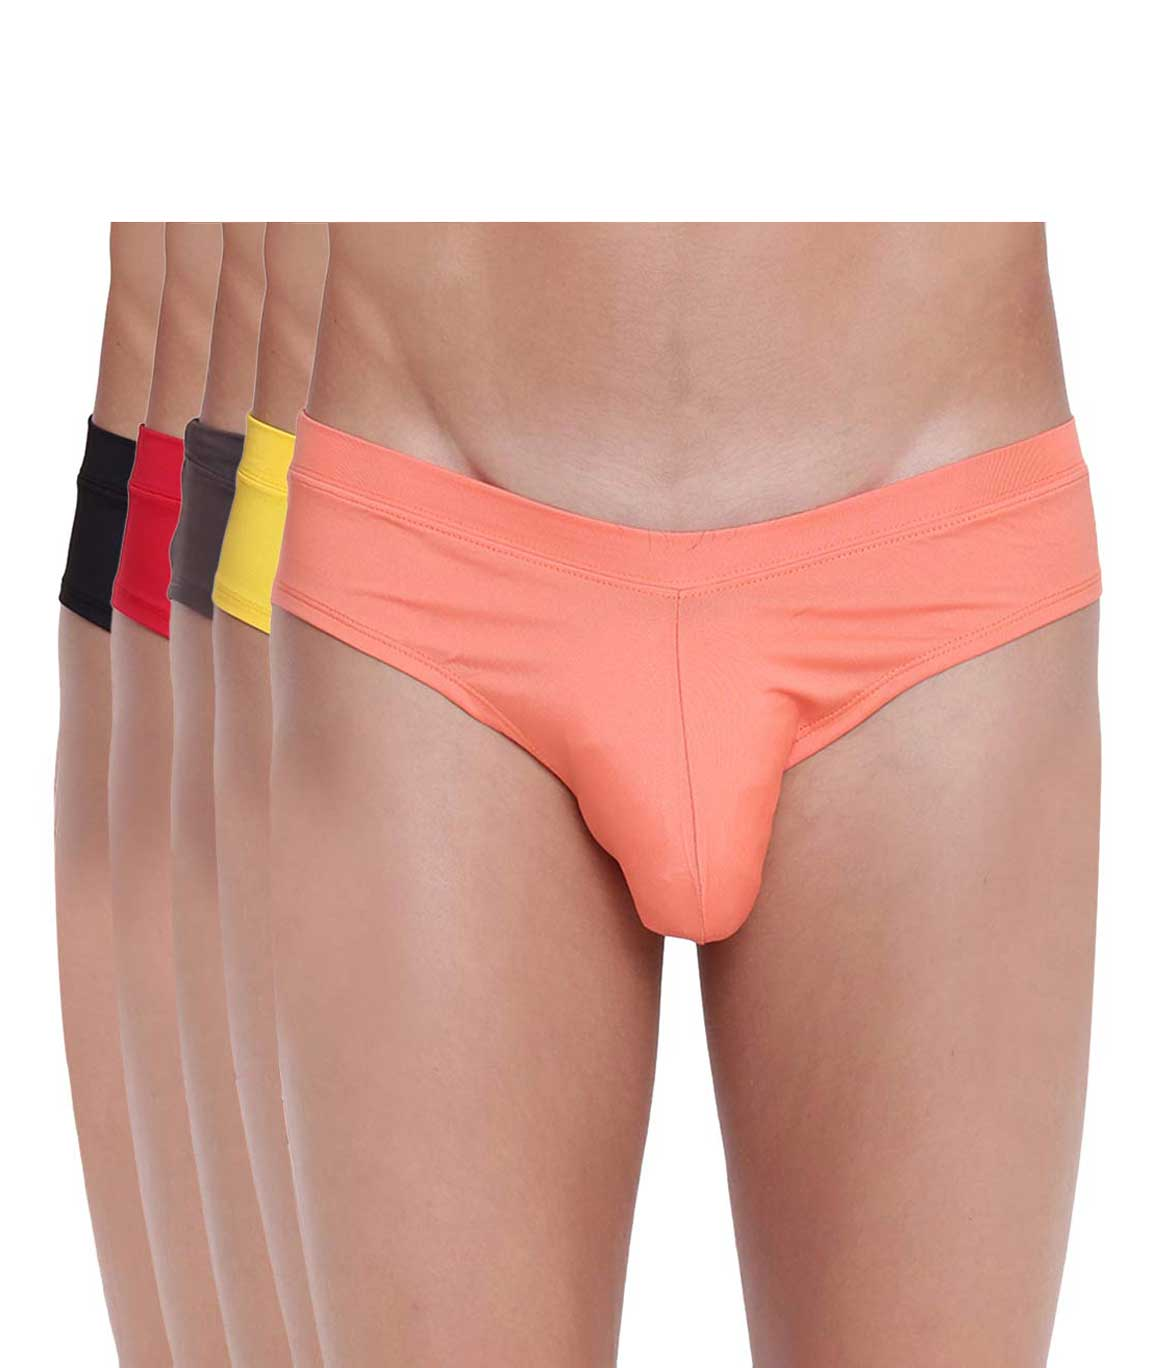 BASIICS Fanboy Style Brief by La Intimo (Pack of 5)